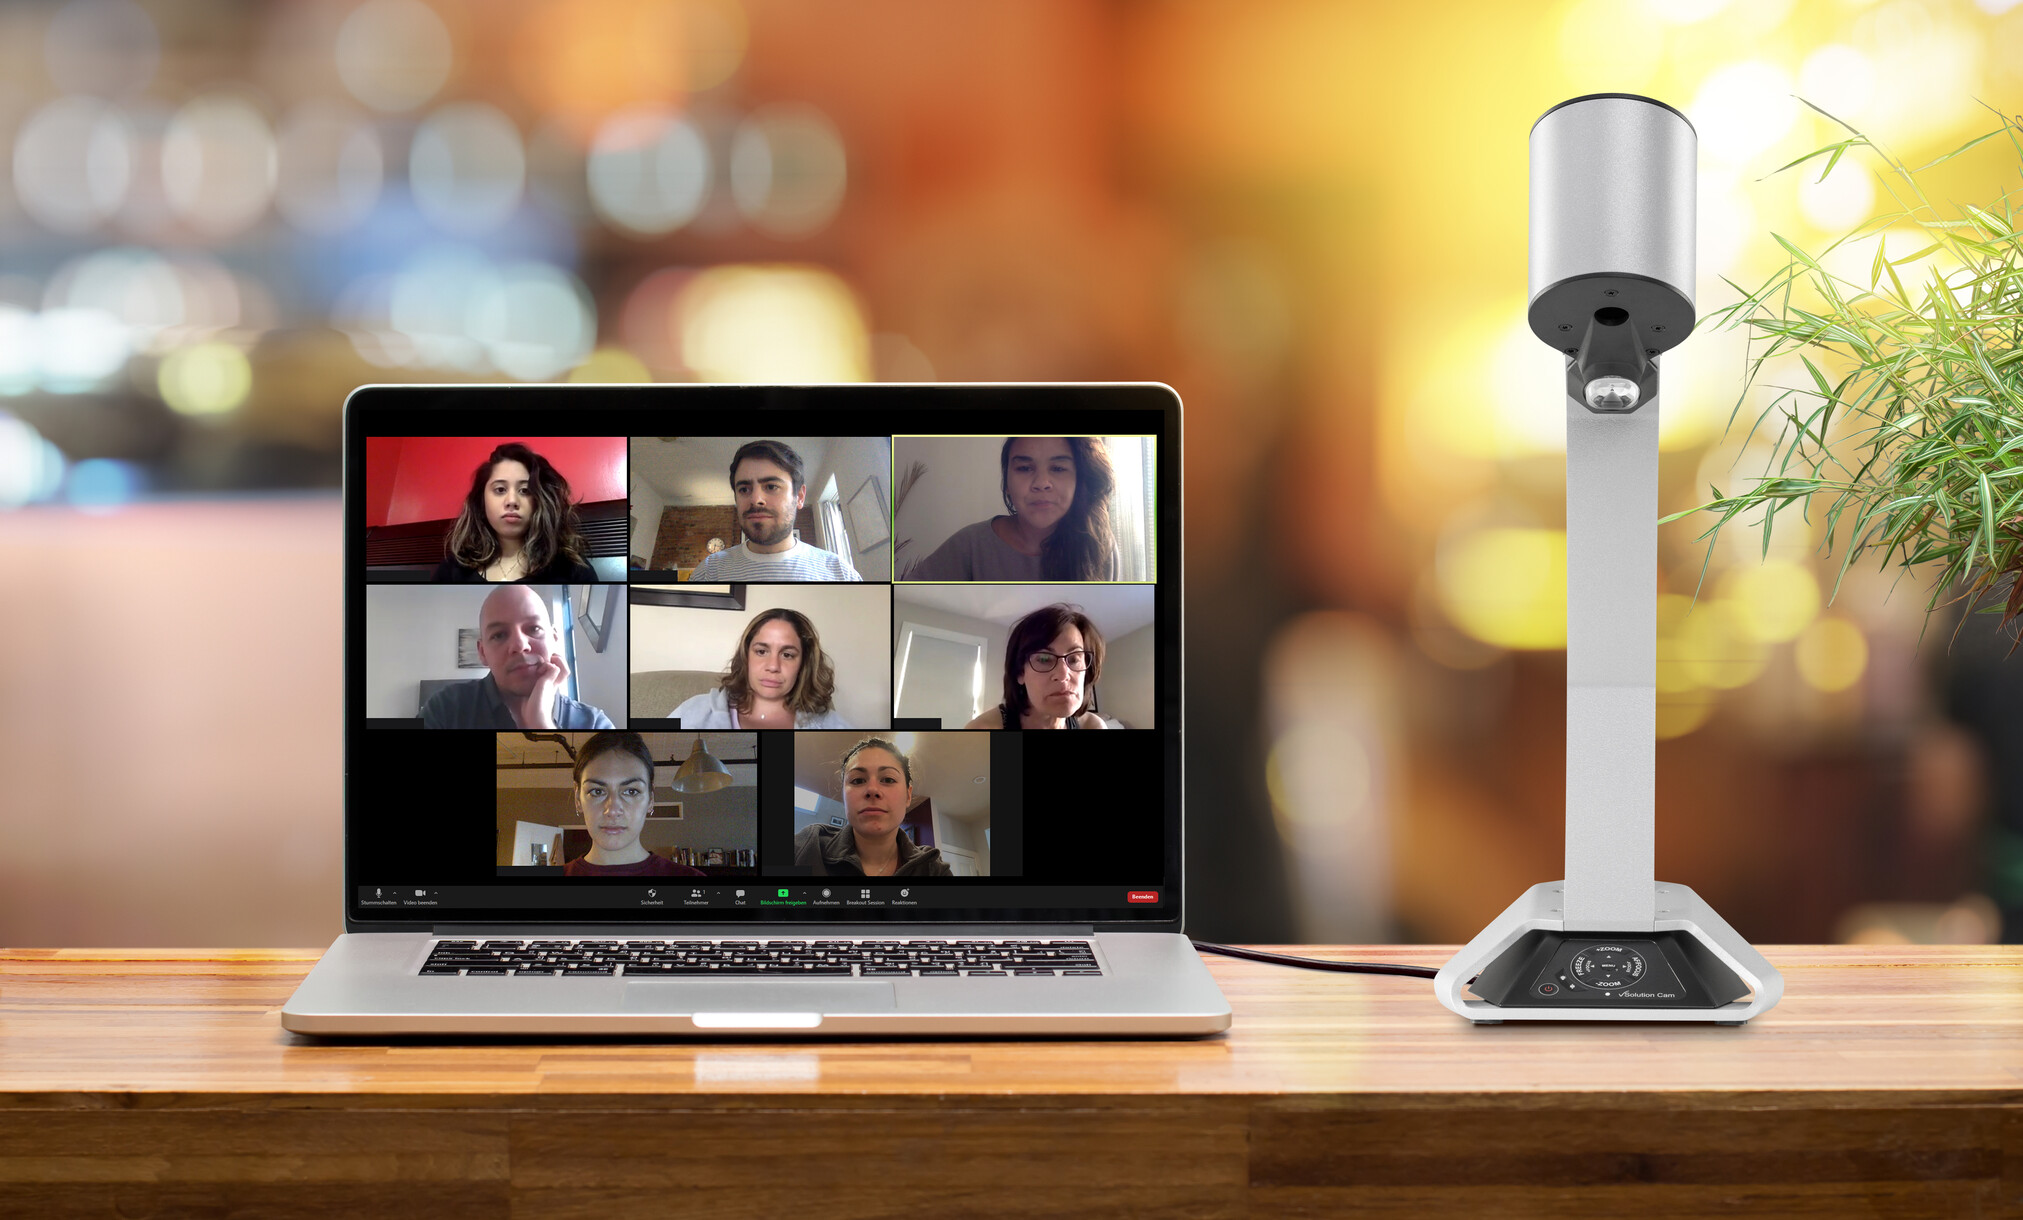 vSolution Cam: Plug-and-play 'live' imaging for online classes and meetings